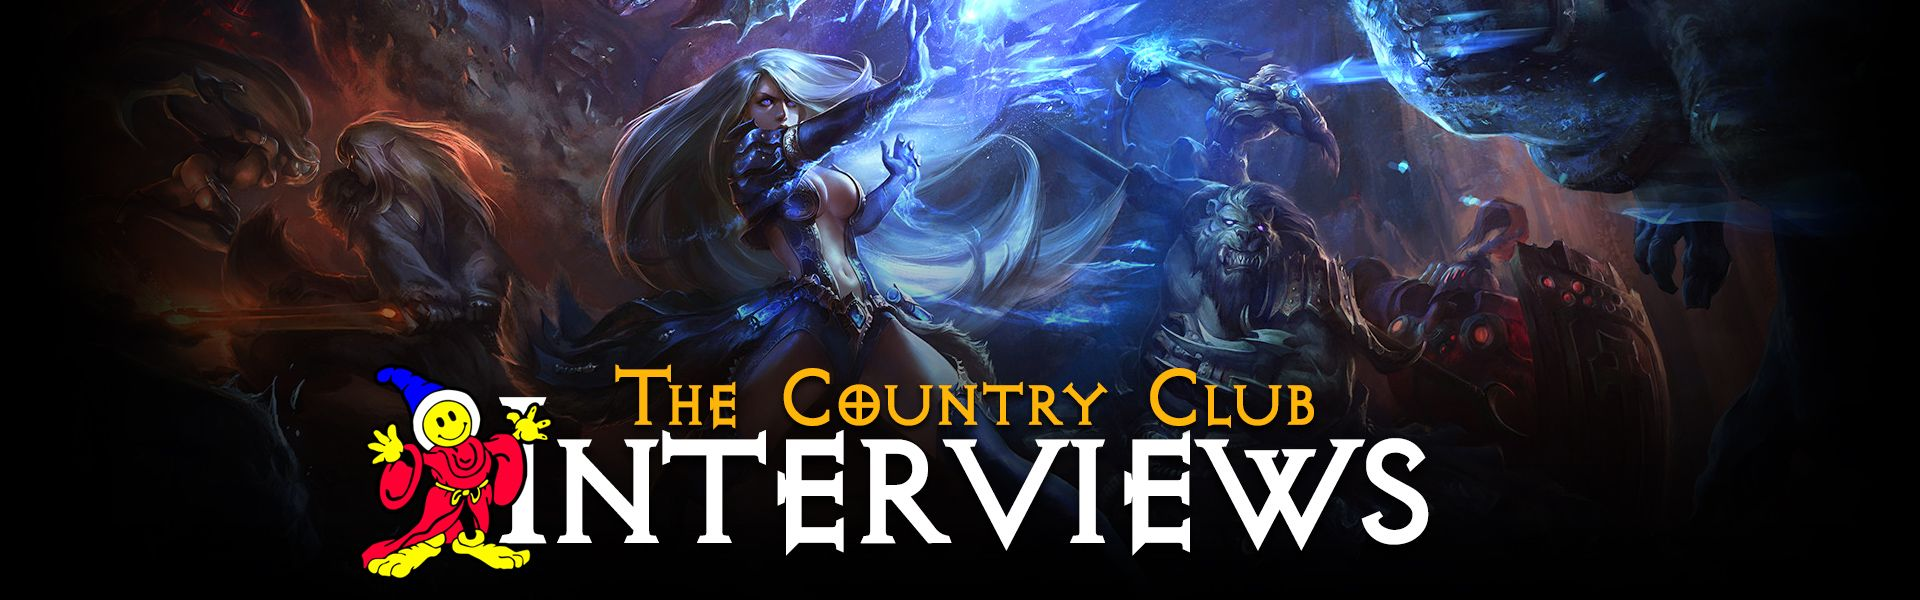 the country club interviews Cover